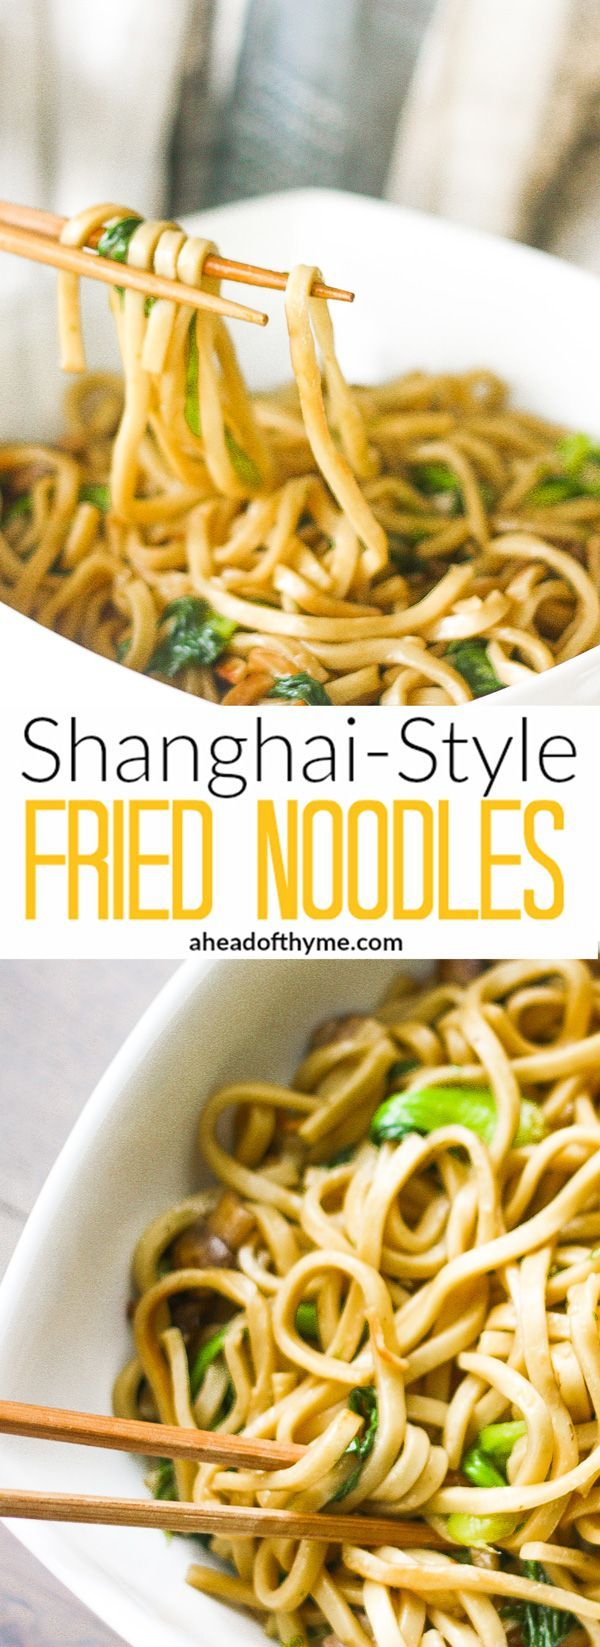 Shanghai-Style Fried Noodles: Forget take-out. Authentic and flavourful Shanghai…